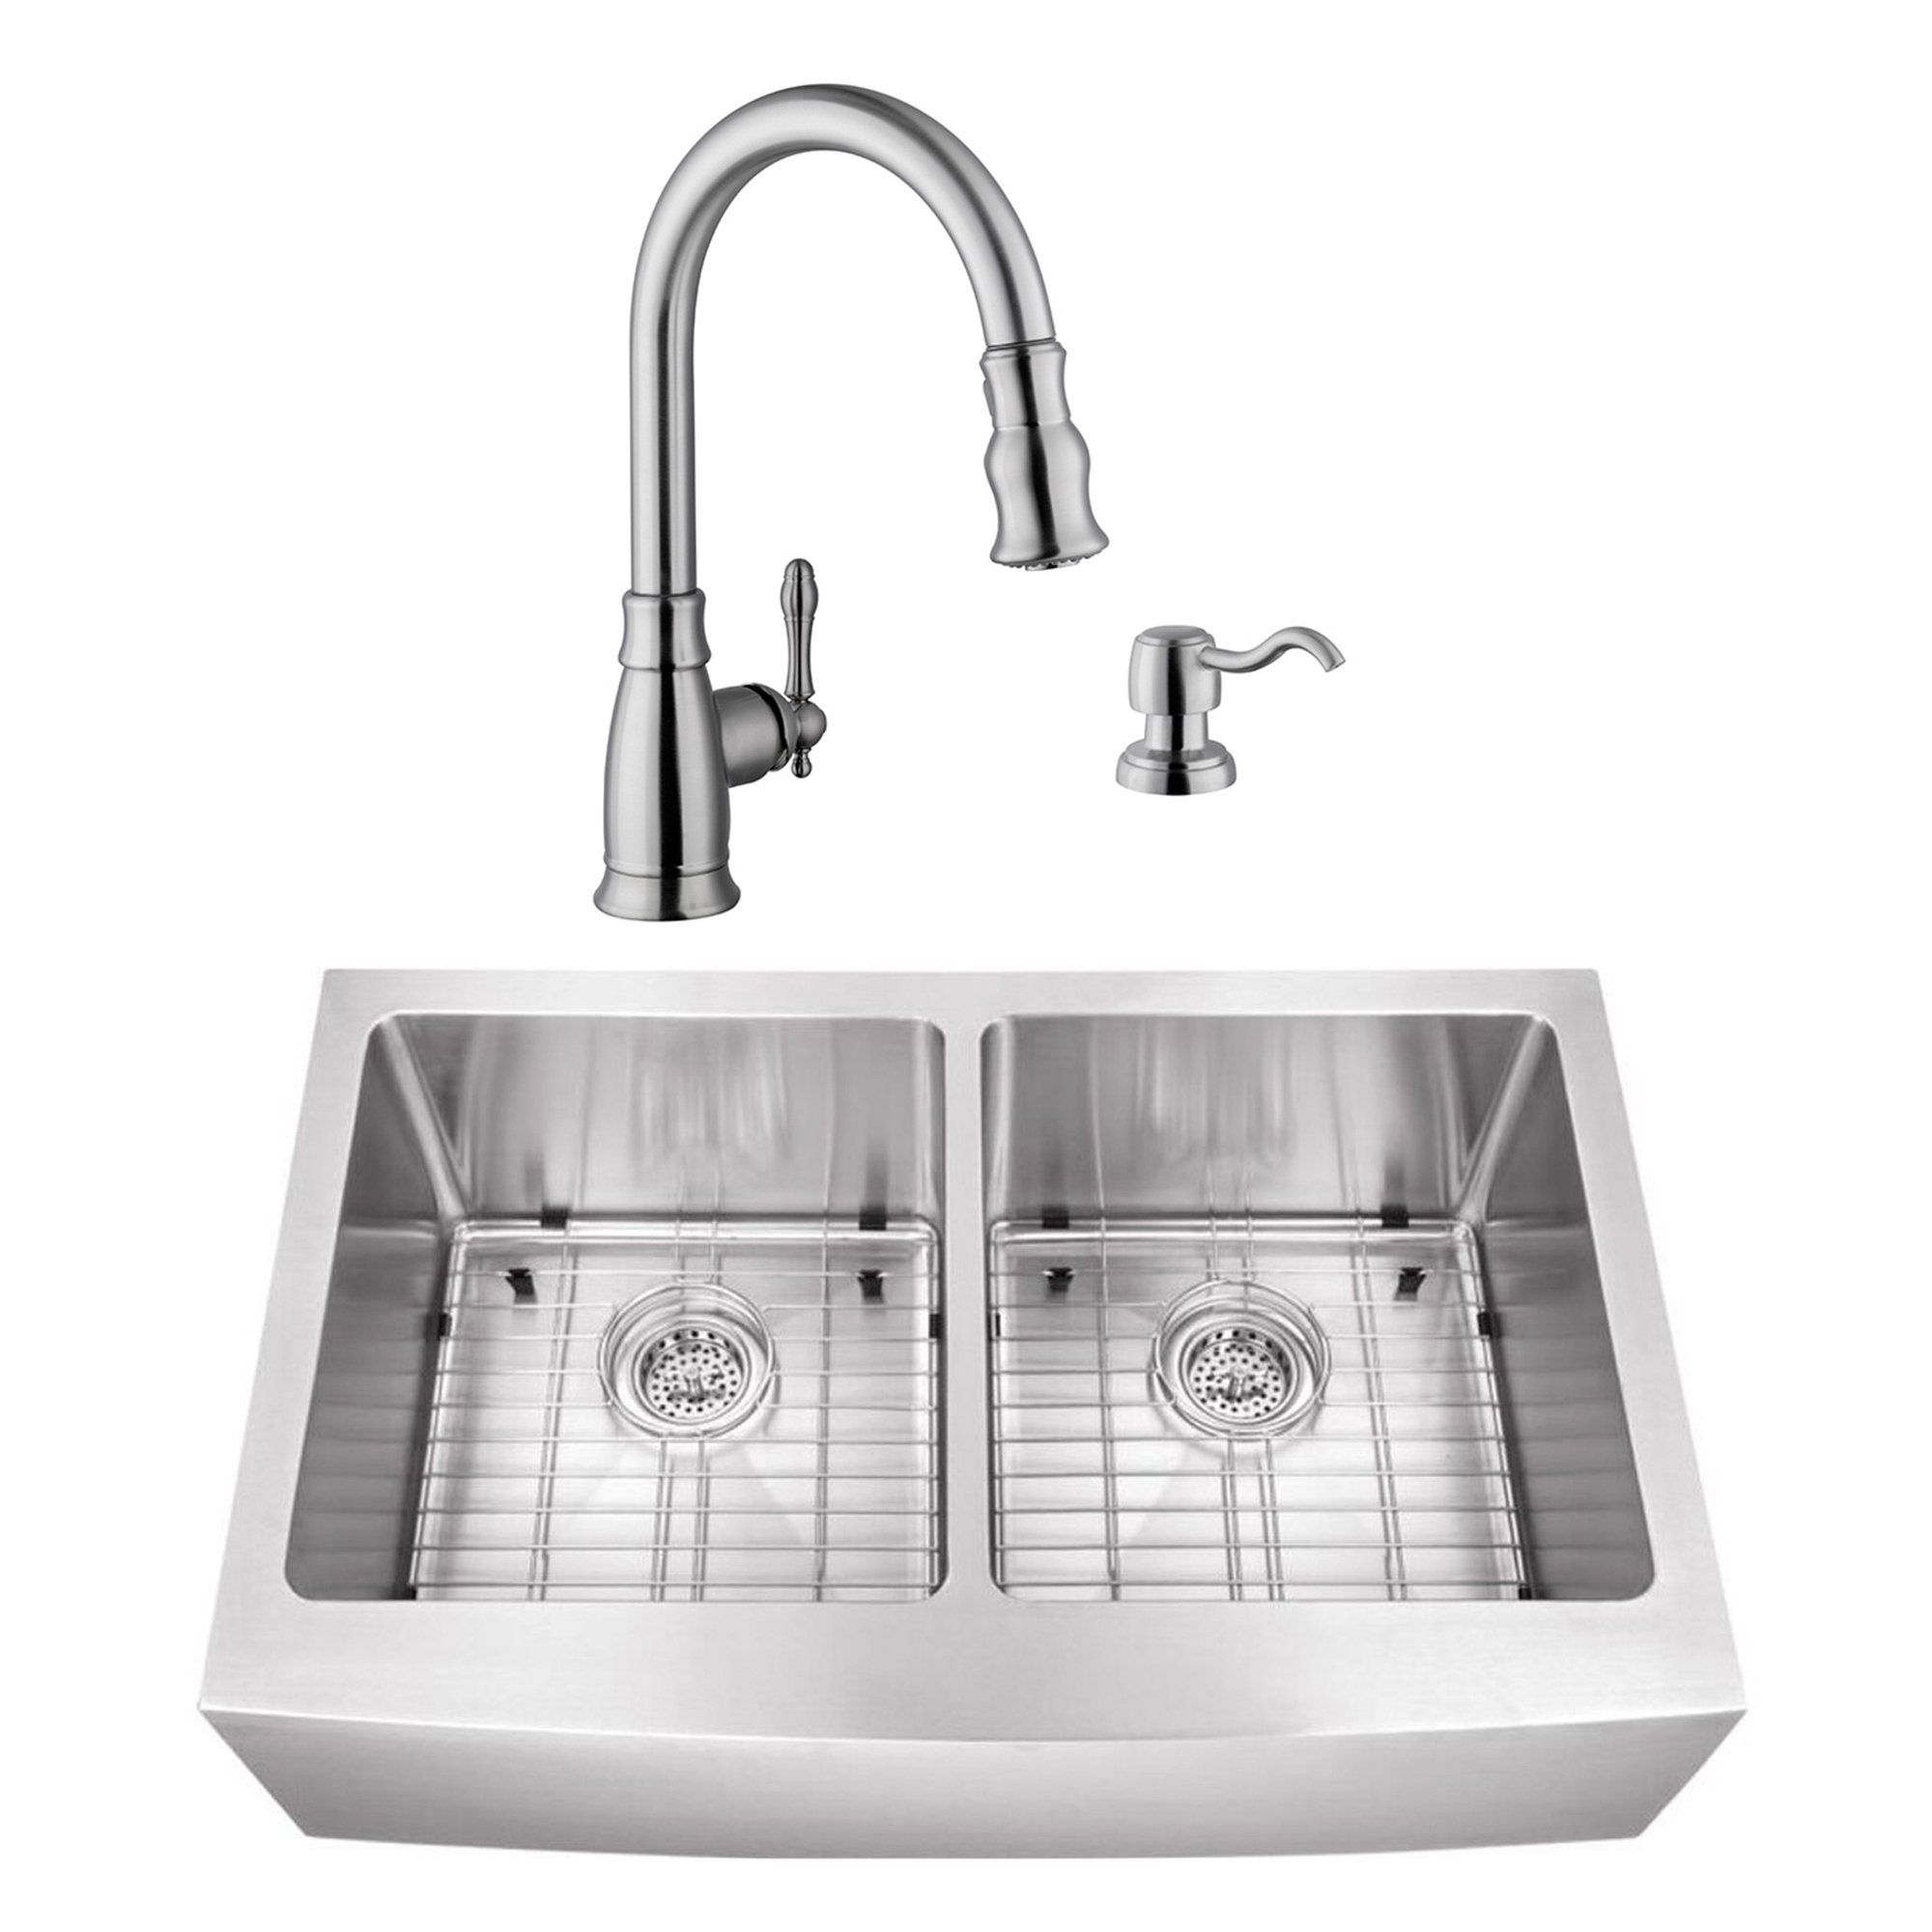 32 7 8 In 50 50 Apron Front Stainless Steel Silver Kitchen Sink Traditional Faucet Cahaba Stainless Steel Kitchen Sink